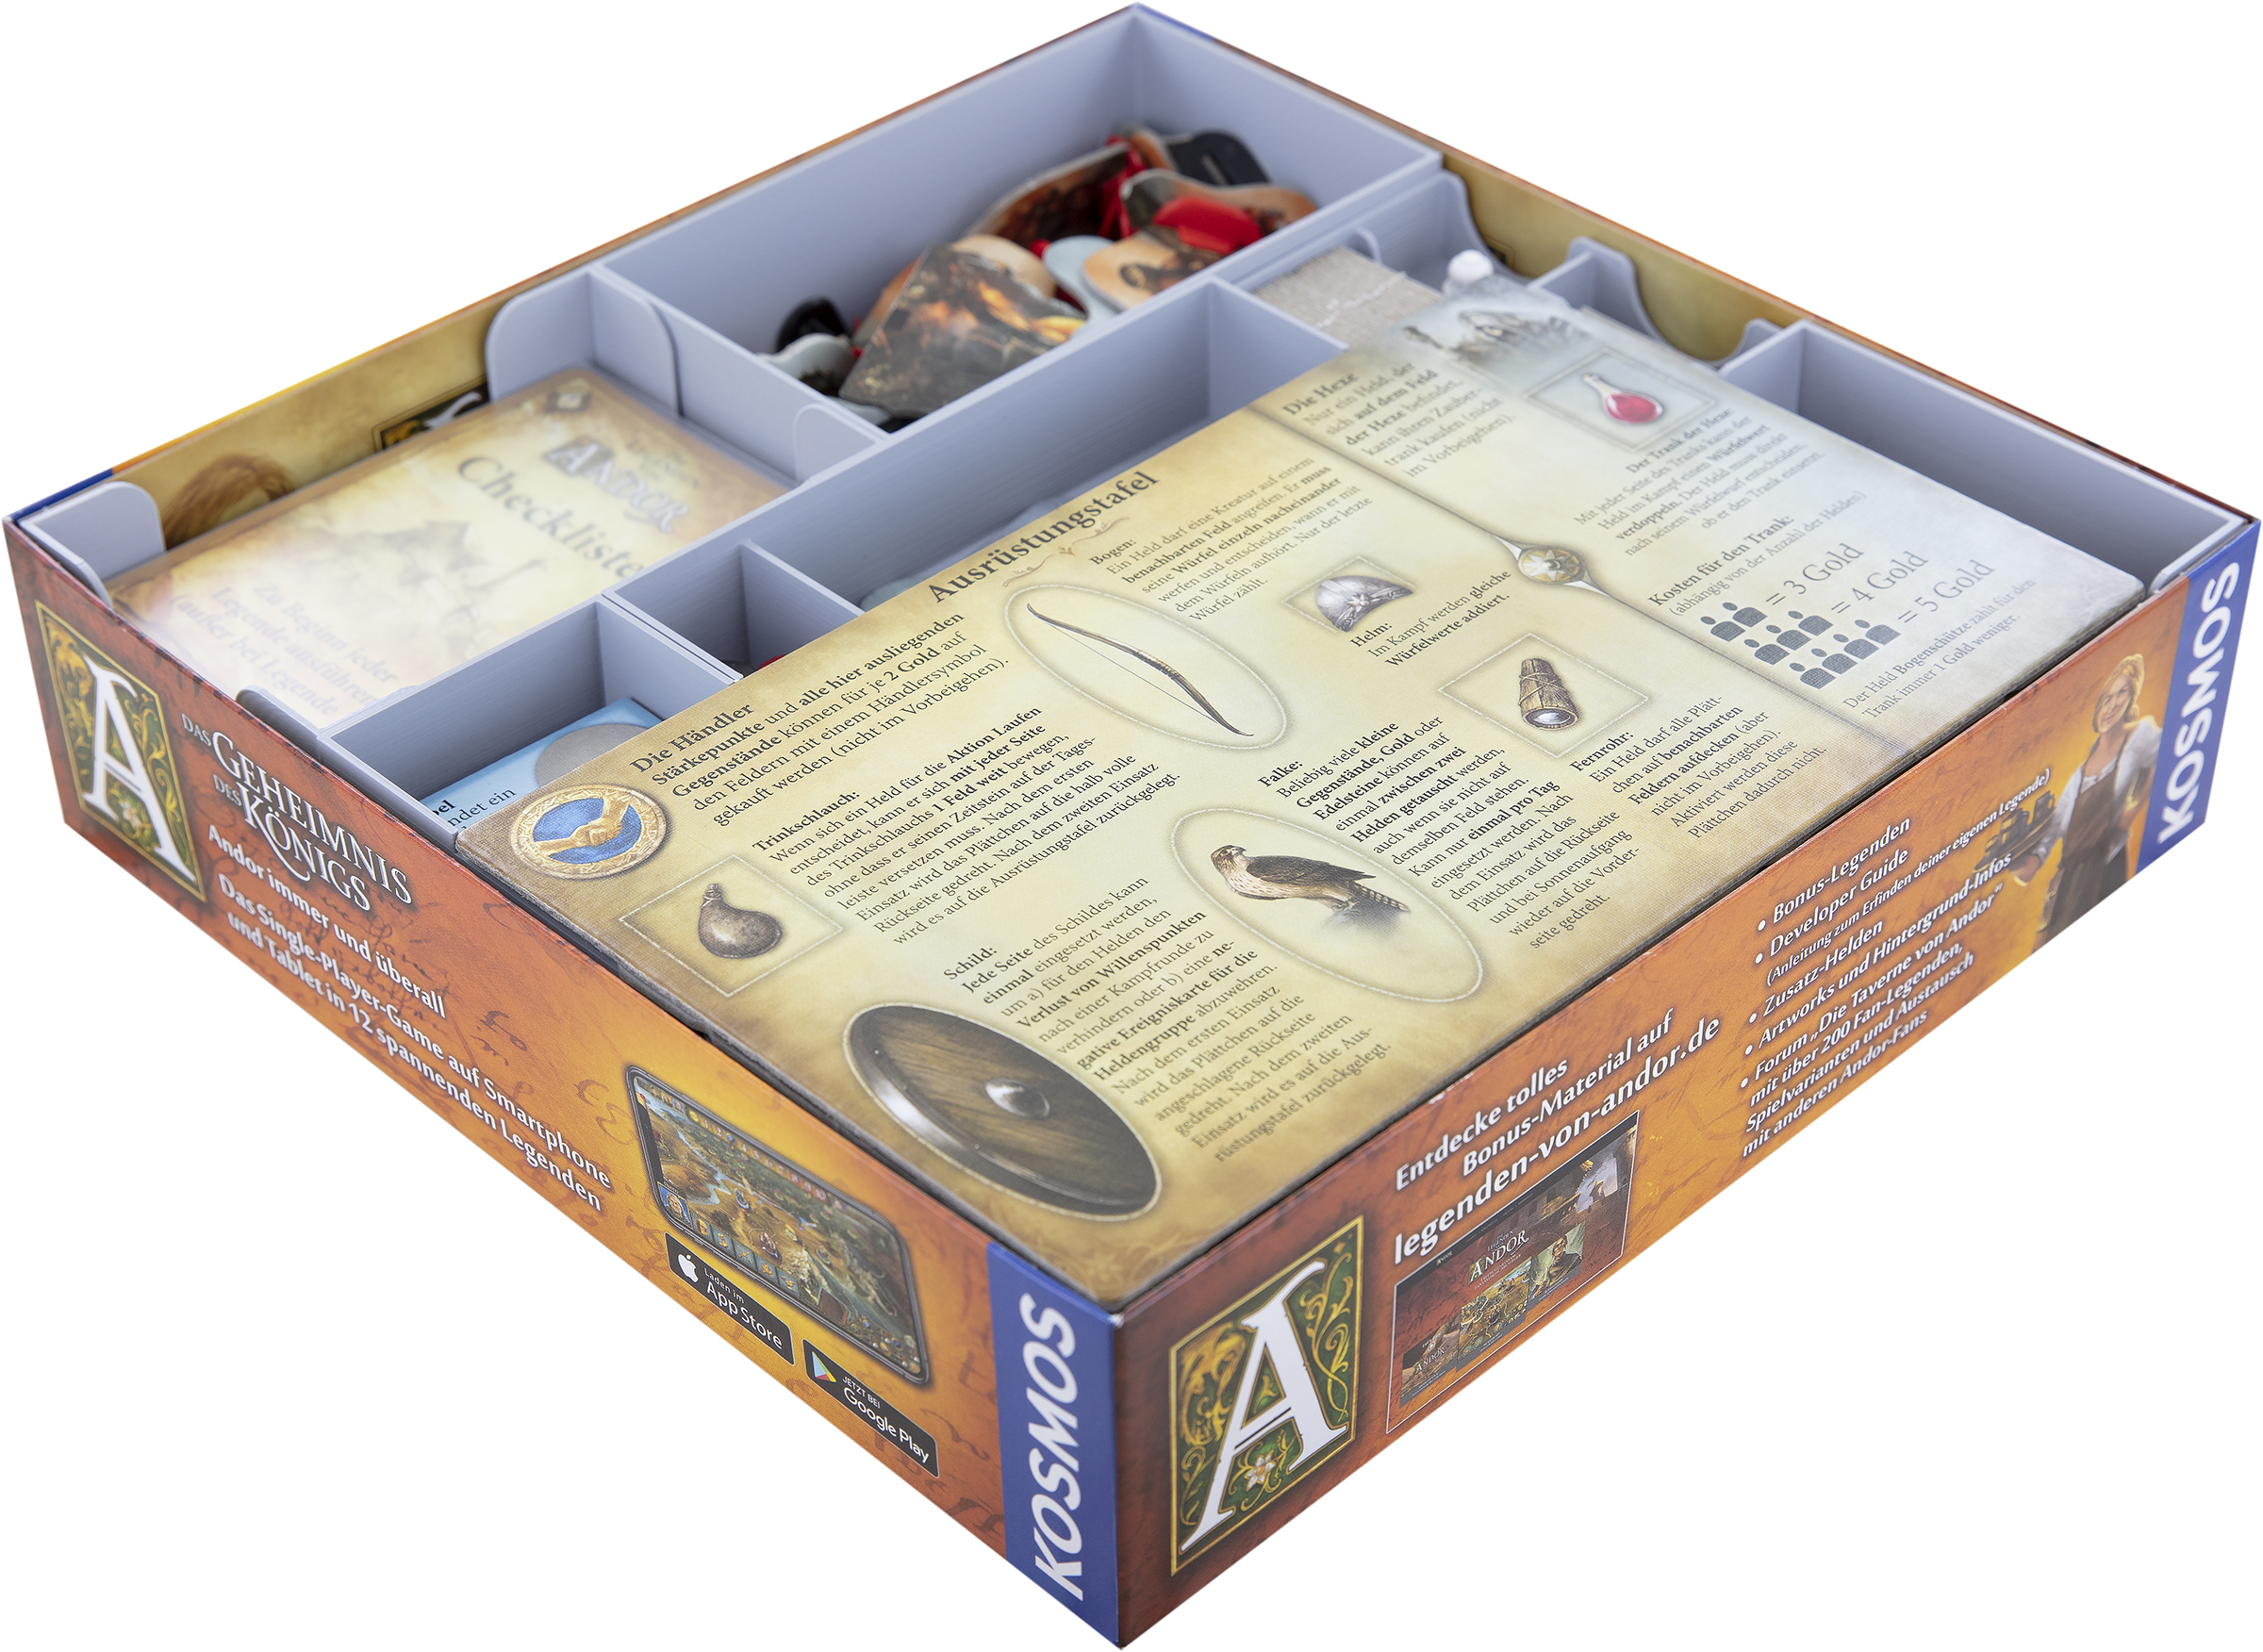 Feldherr Organizer for The Legends of Andor and its expansion New Heroes